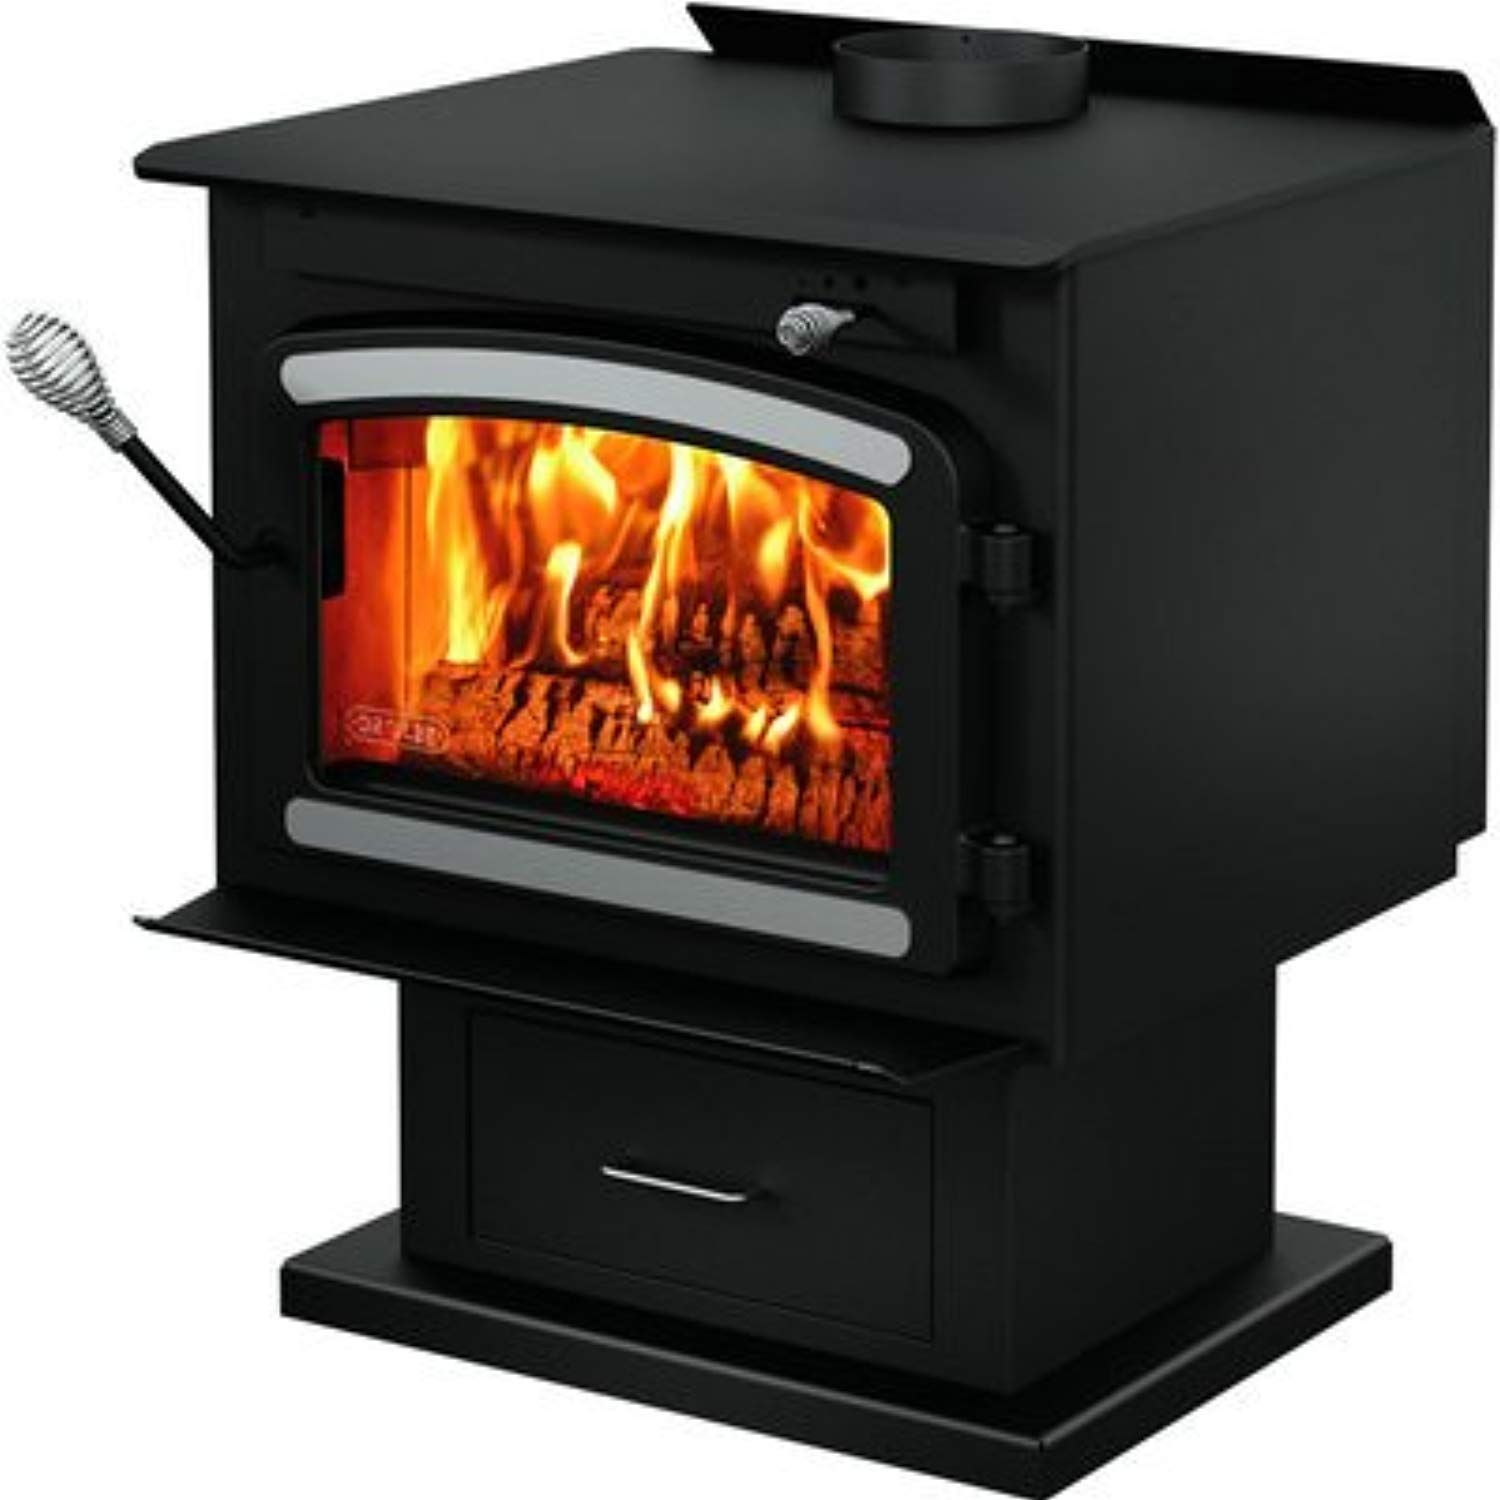 Drolet Classic Wood Stove With Blower 75 000 Btu Epa Certified Model Db03081 Learn More By Visiting The Image Link Wood Stove Wood Wood Stove Blower